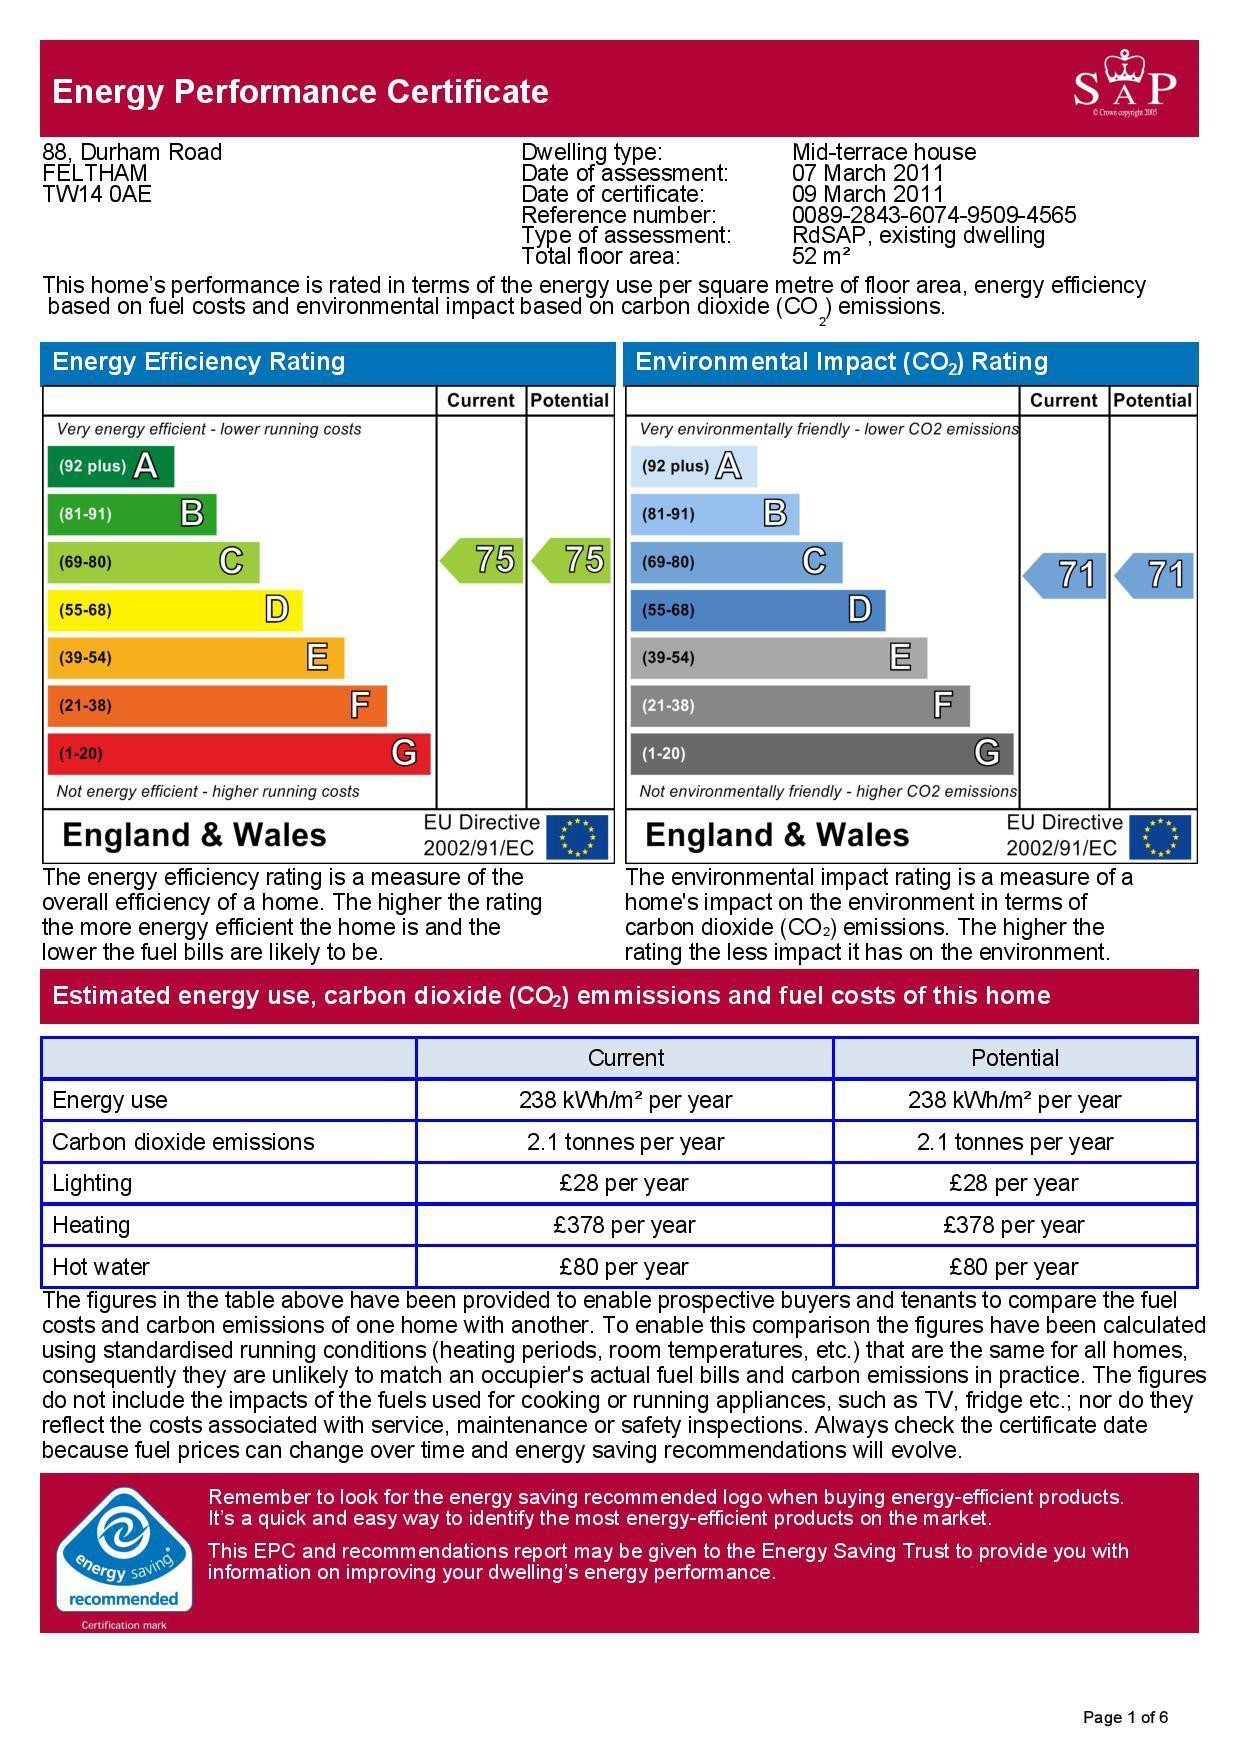 EPC Graph for 88 Durham Road, Feltham, Middlesex TW14 0AE